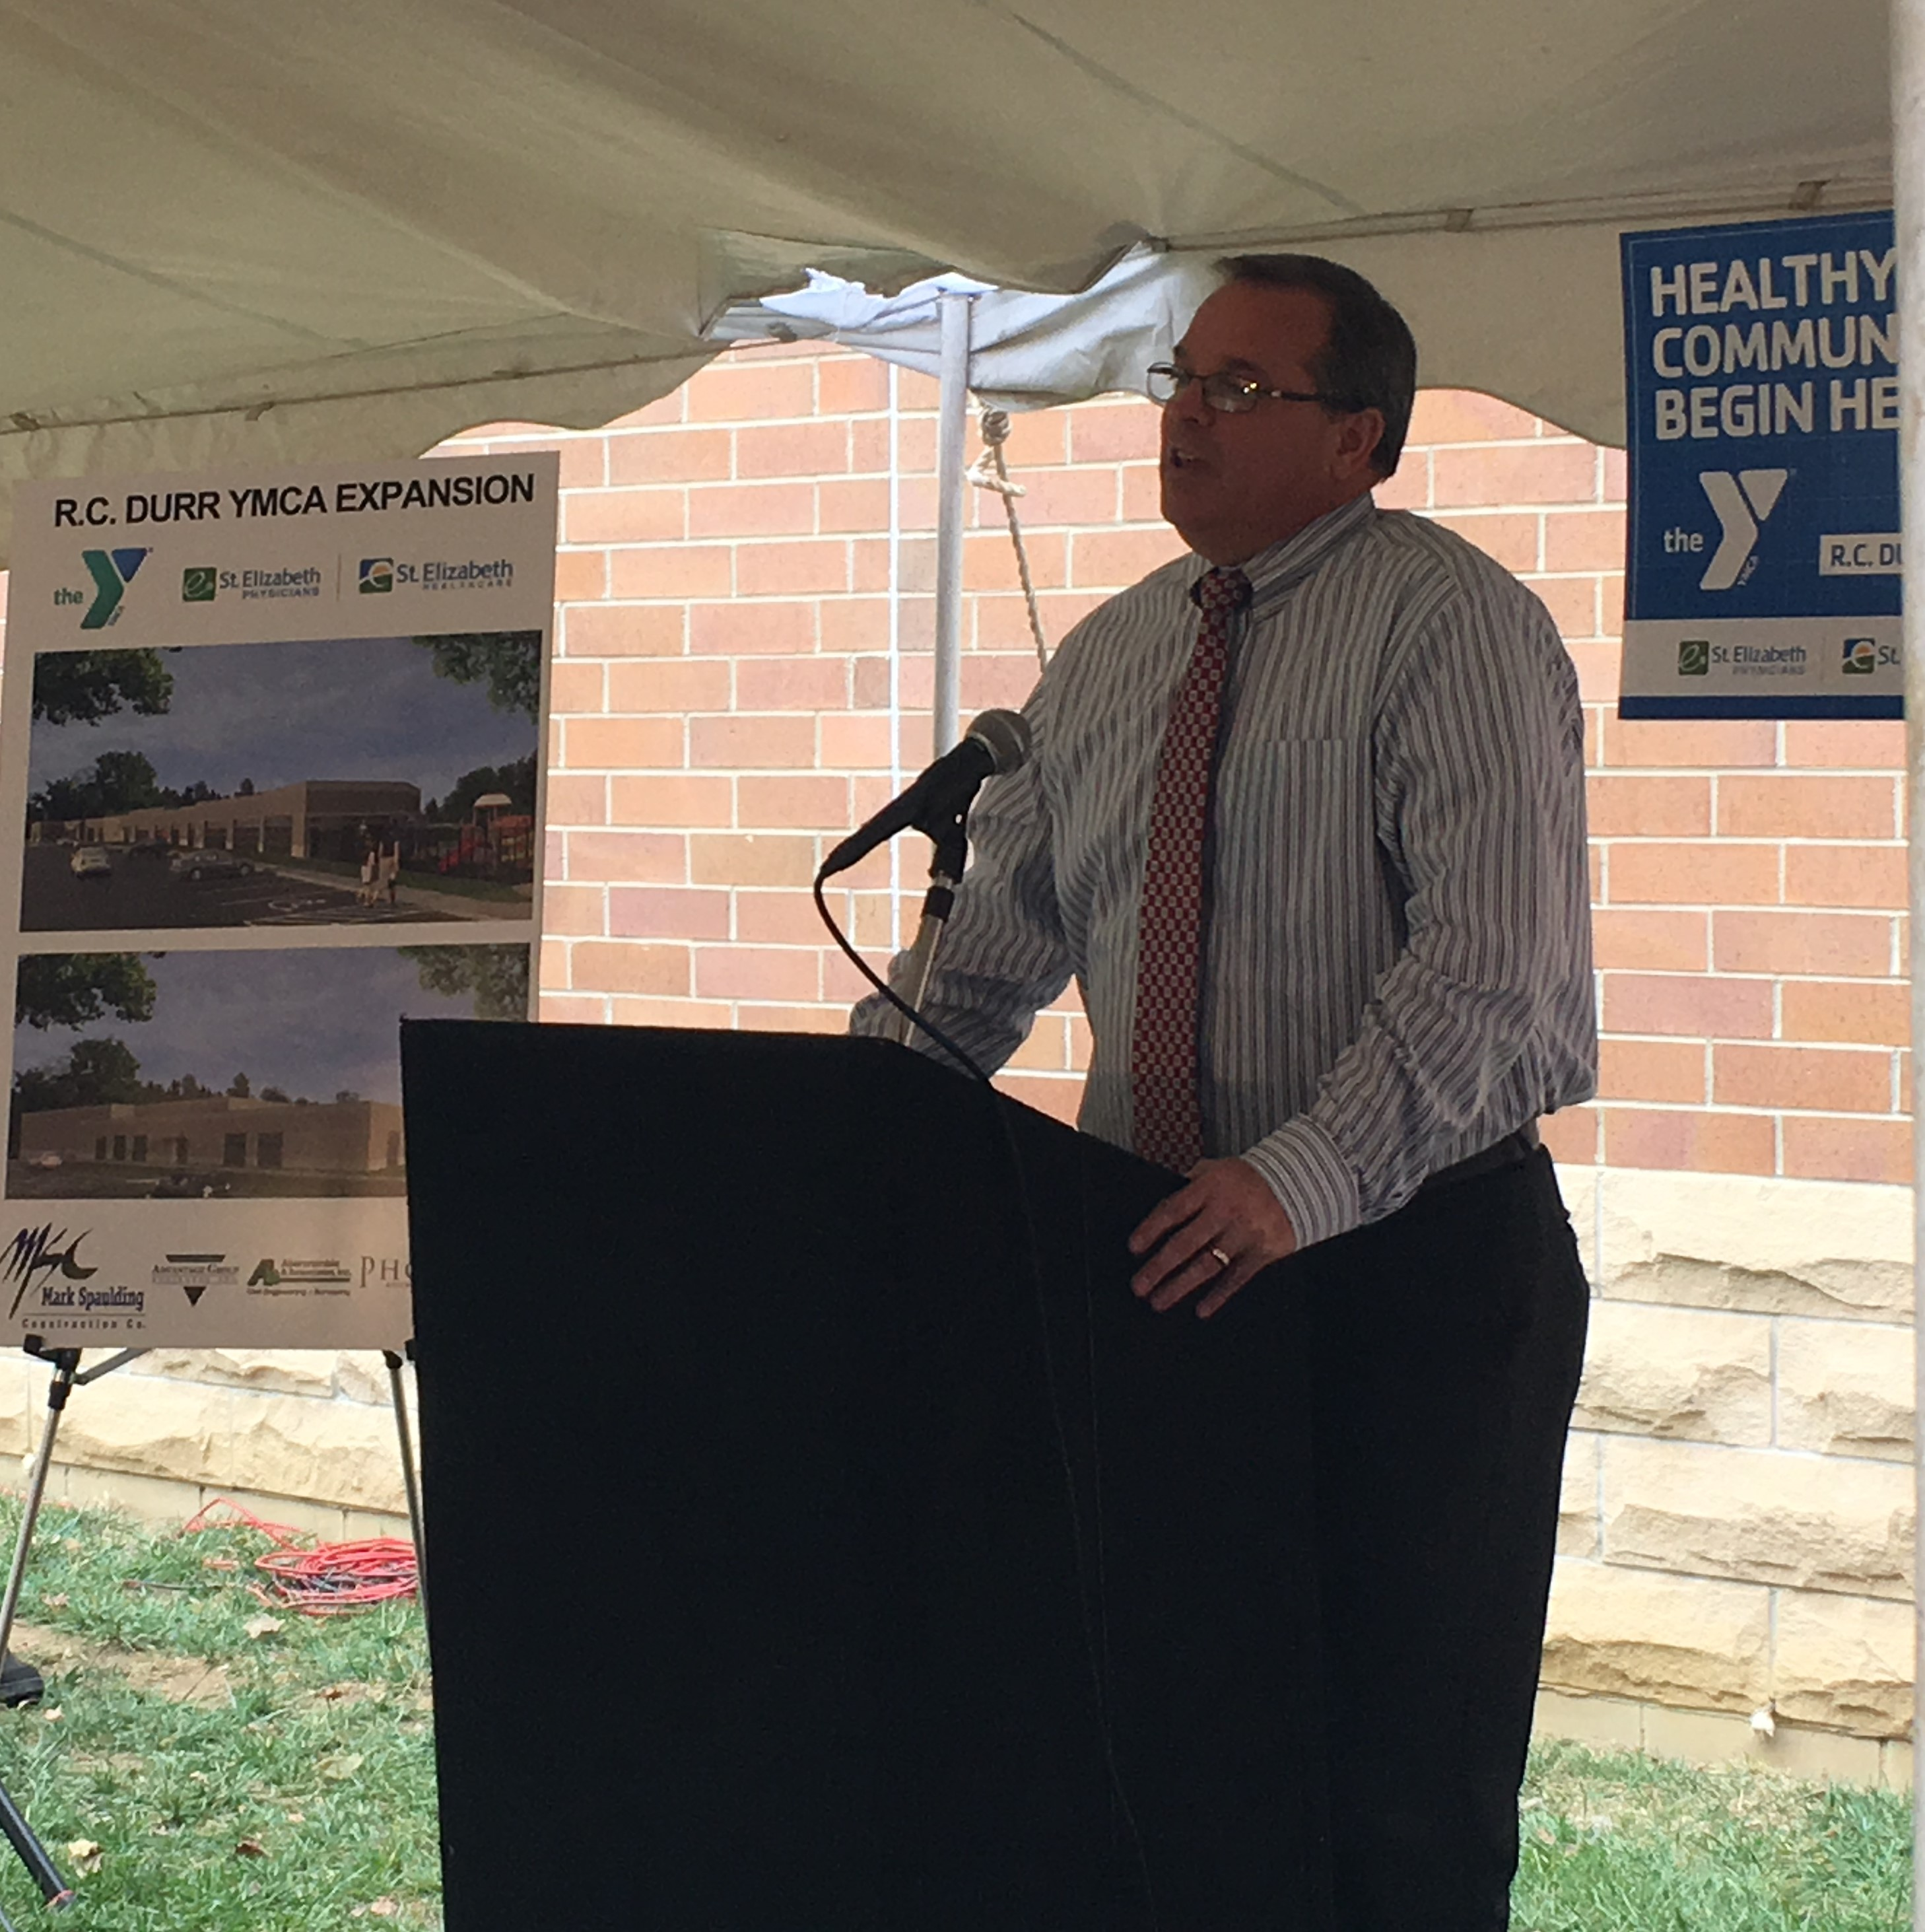 St. Elizabeth Healthcare president and CEO Garren Colvin talks about the importance of integrating healthcare